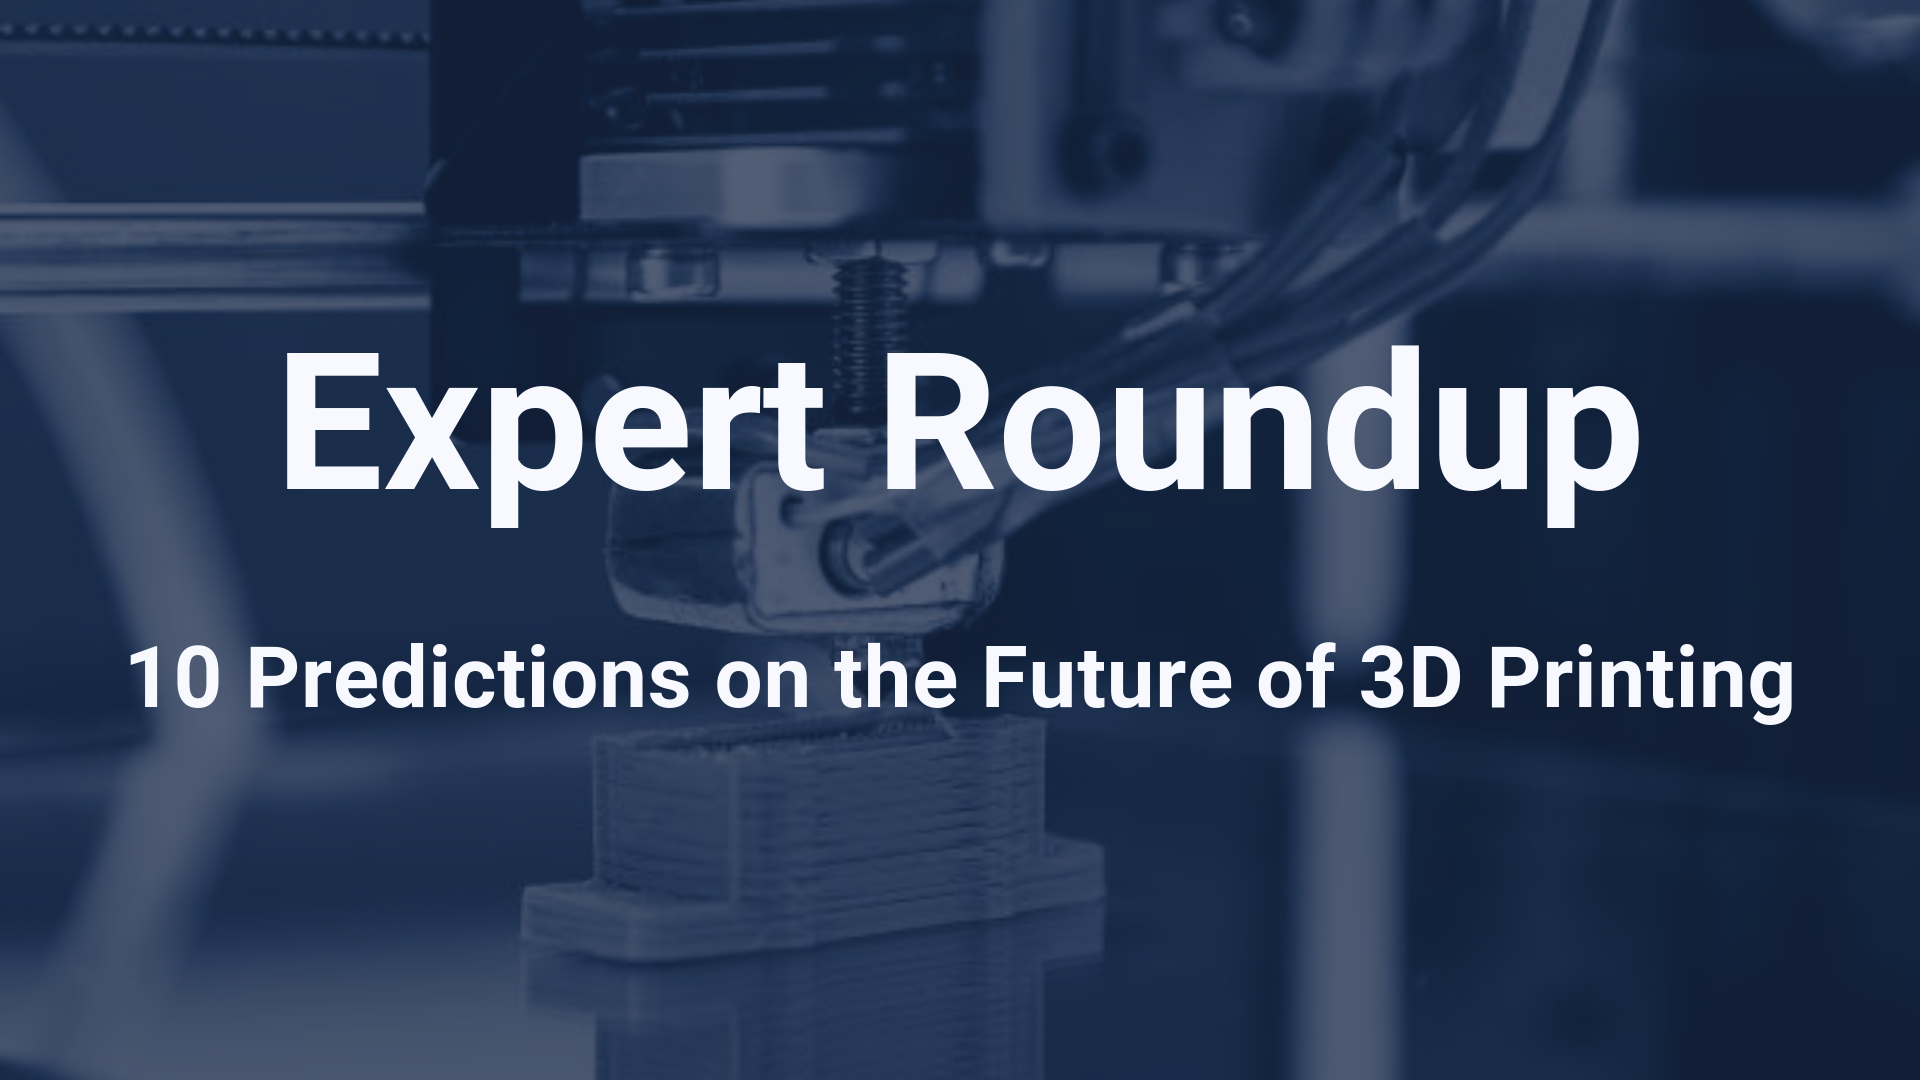 10 Predictions on the Future of 3D Printing [Expert Roundup]